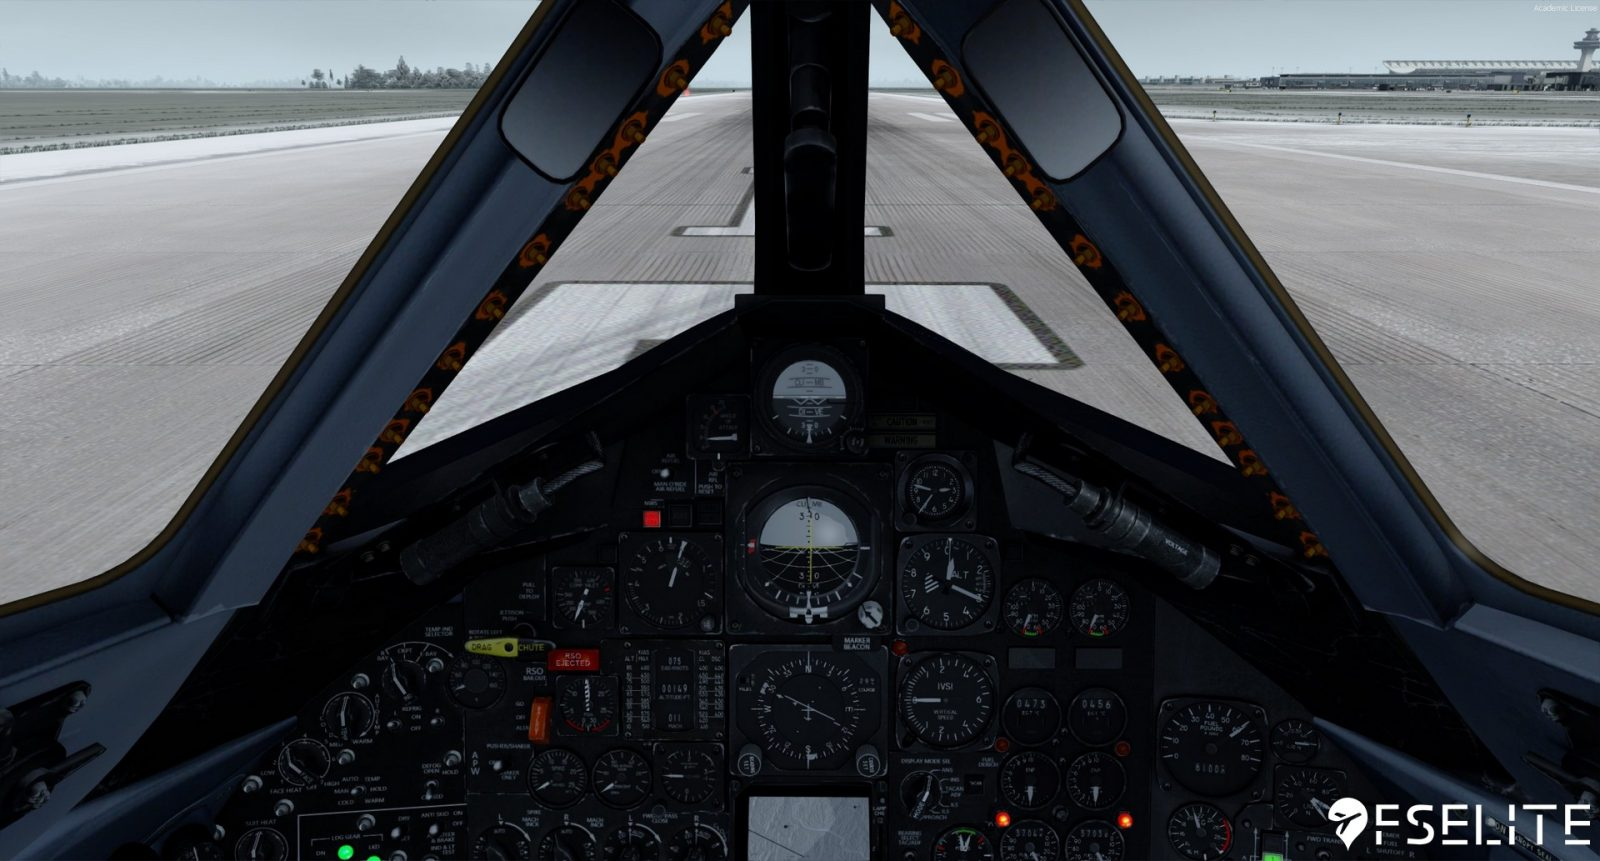 prepar3d / fsx] Milviz SR-71 Blackbird: The FSElite First